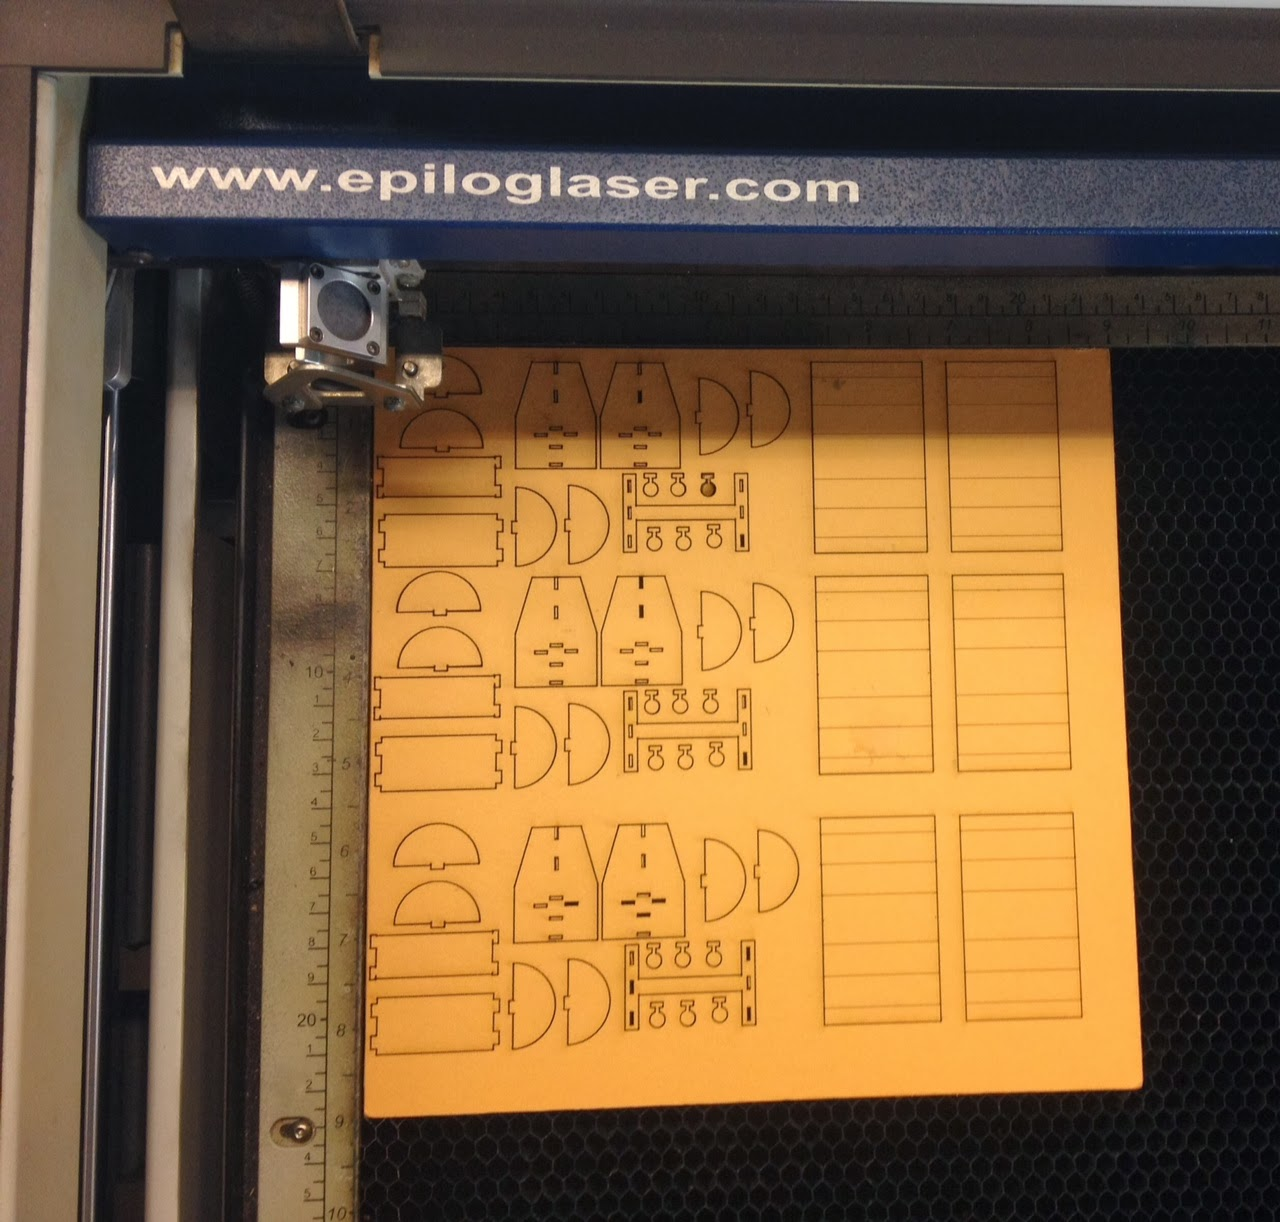 Image shows laser cut wooden template of miniature exhibit kiosk models to be assembled.